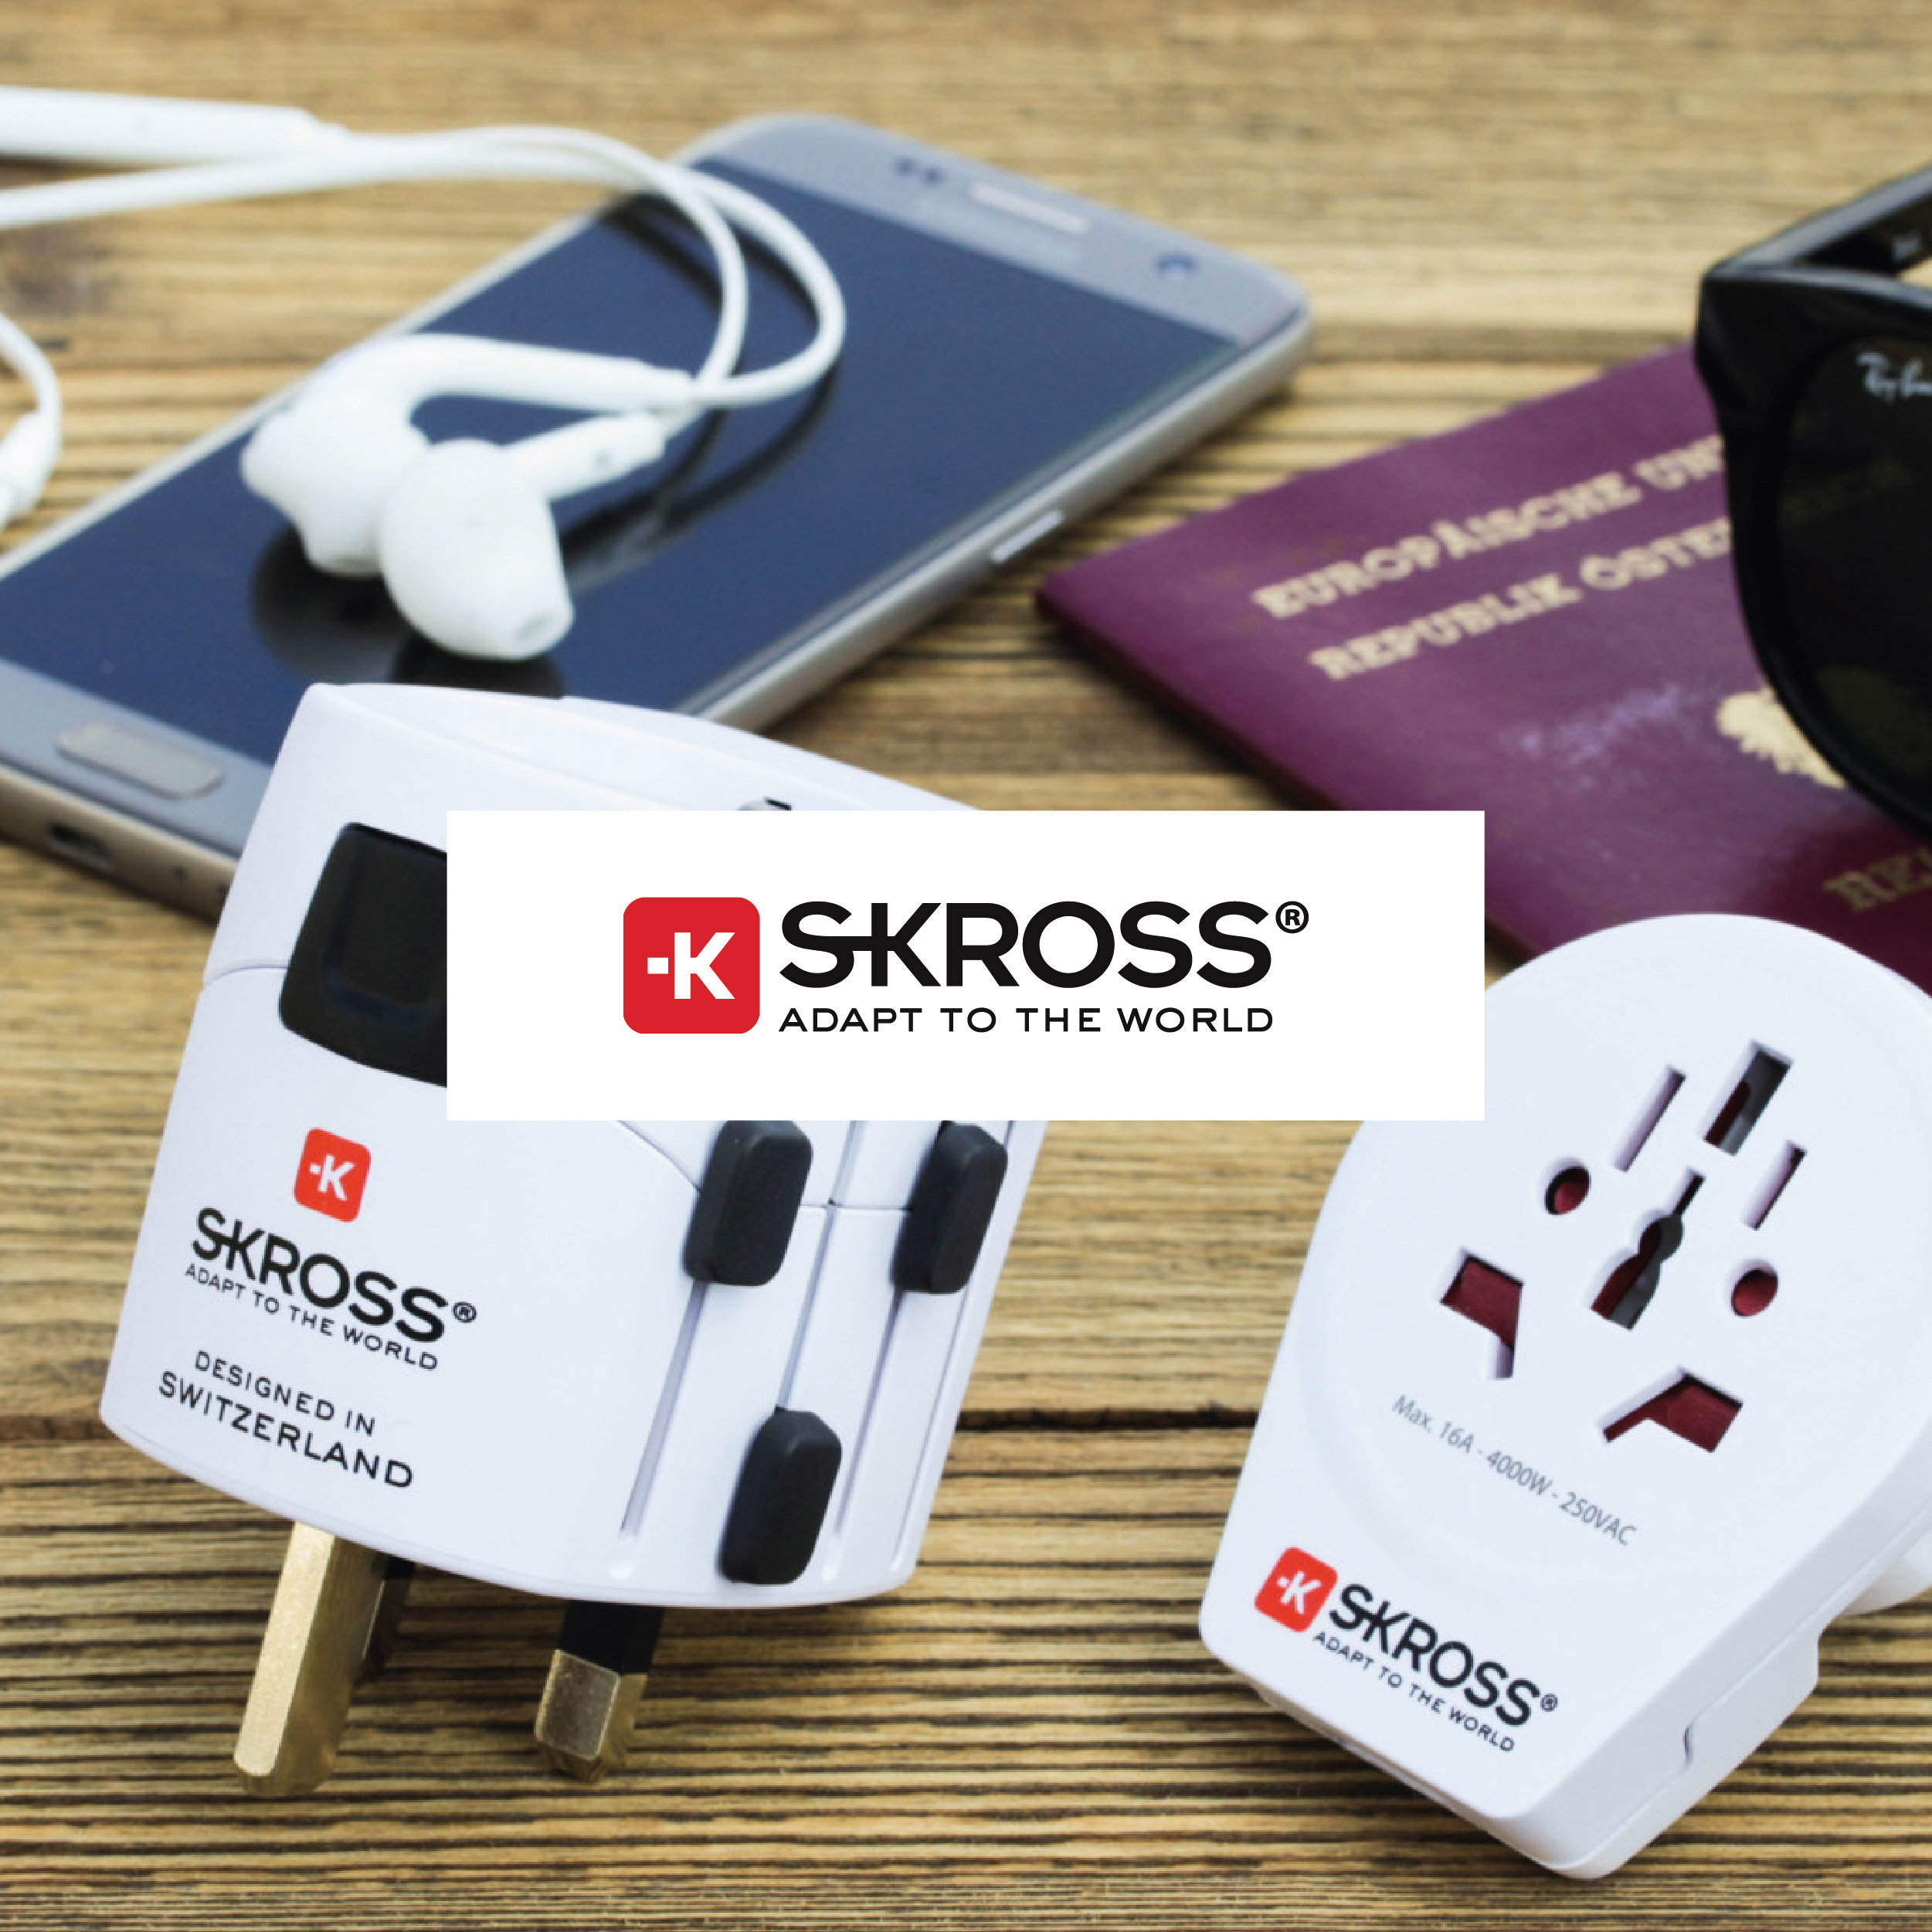 PromoBrand_Skross_Promotional_Merchandise_Brands_Bounce_Creative_Designs